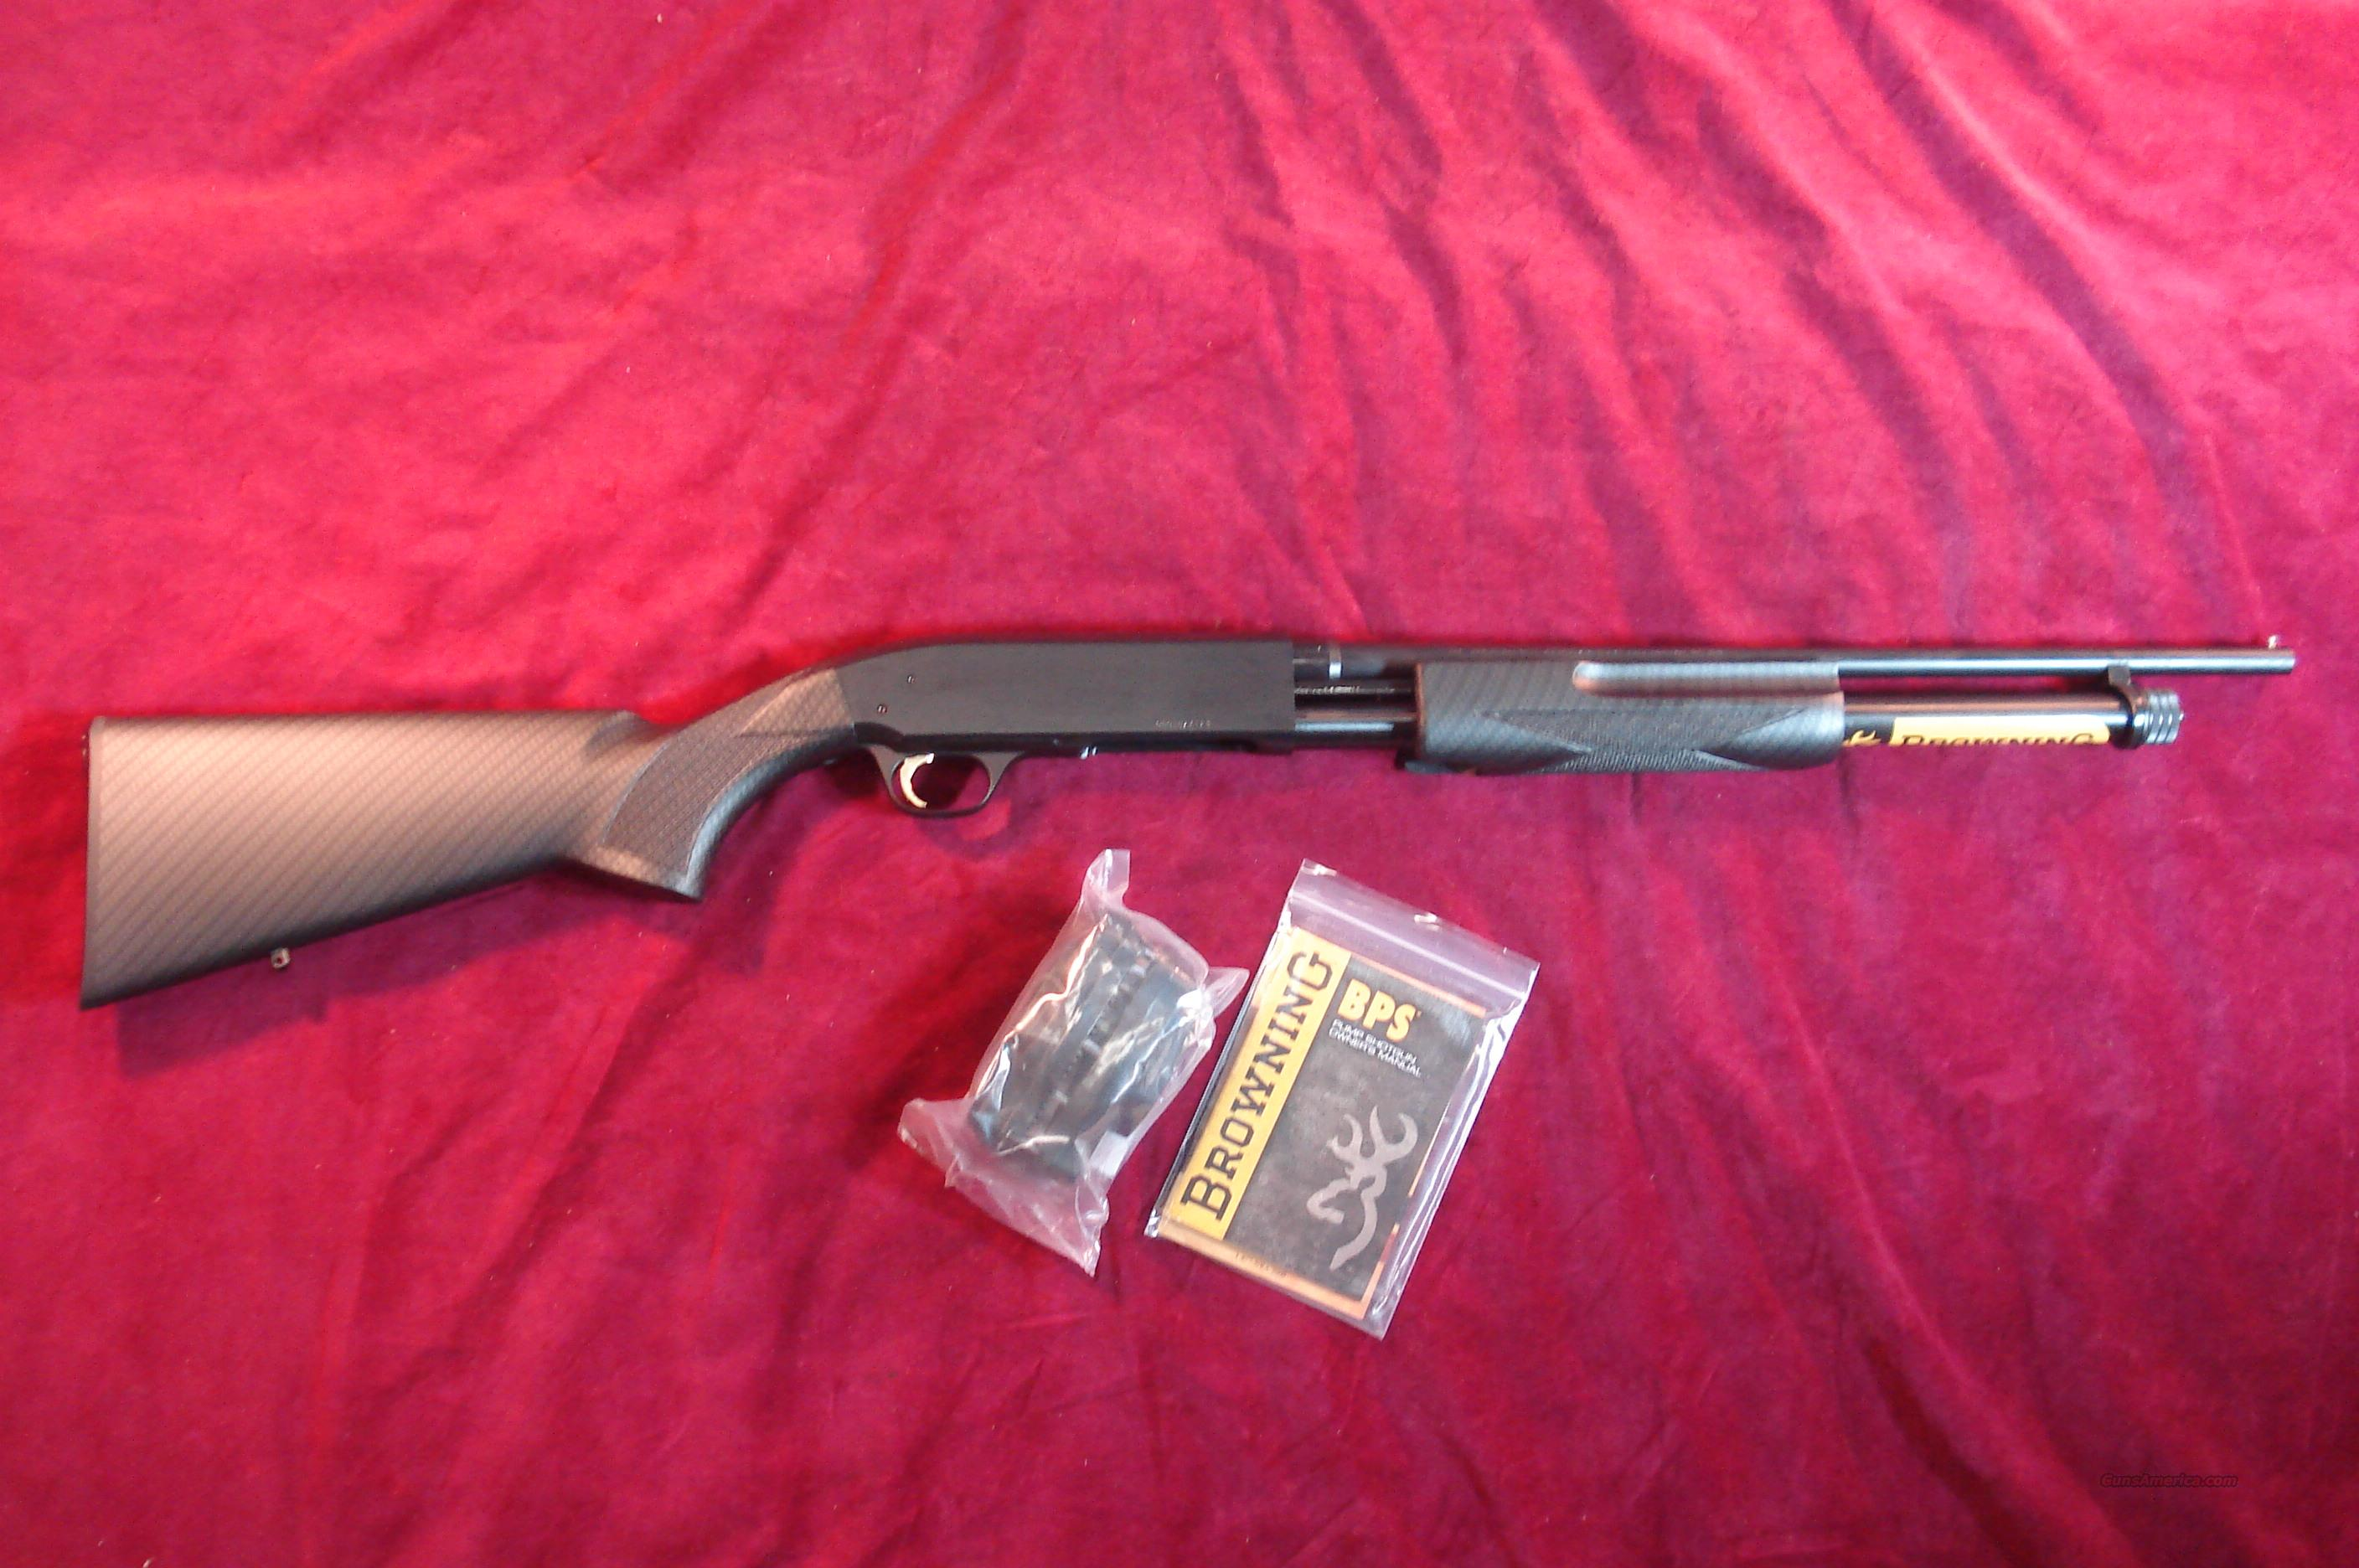 BROWNING BPS 410G SYHTHETIC CARBON FIBER FINISH  WITH EXTENDED MAGAZINE TUBE NEW  Guns > Shotguns > Browning Shotguns > Pump Action > Hunting